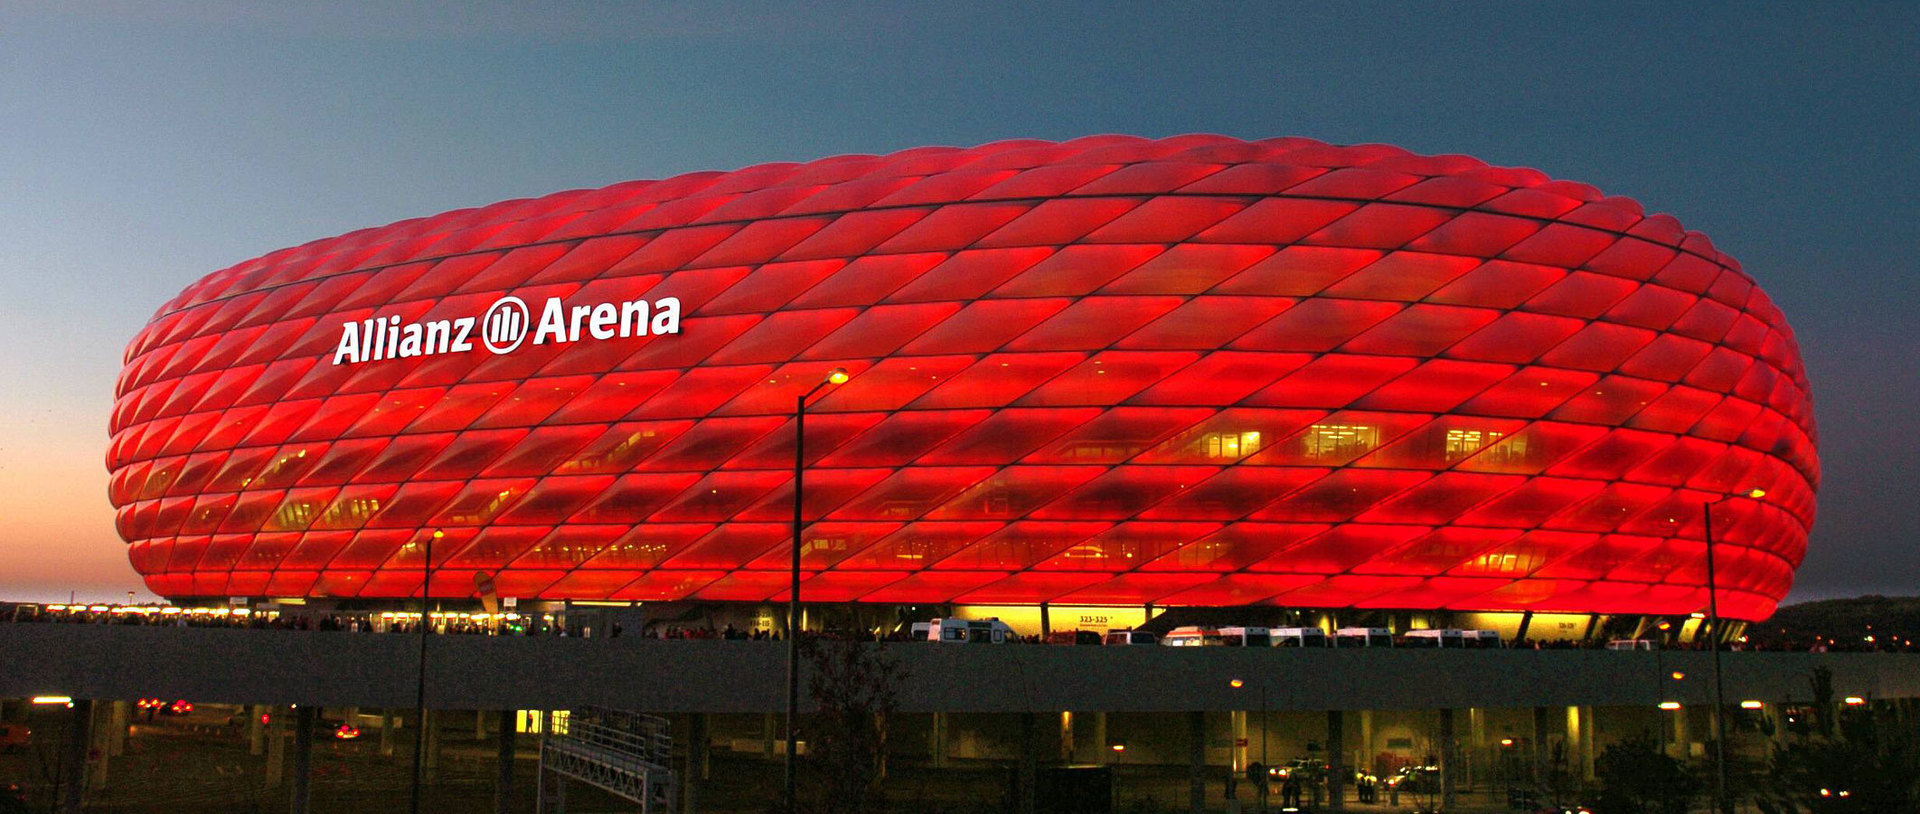 Munich's Olympic stadium gave way to the Allianz Arena